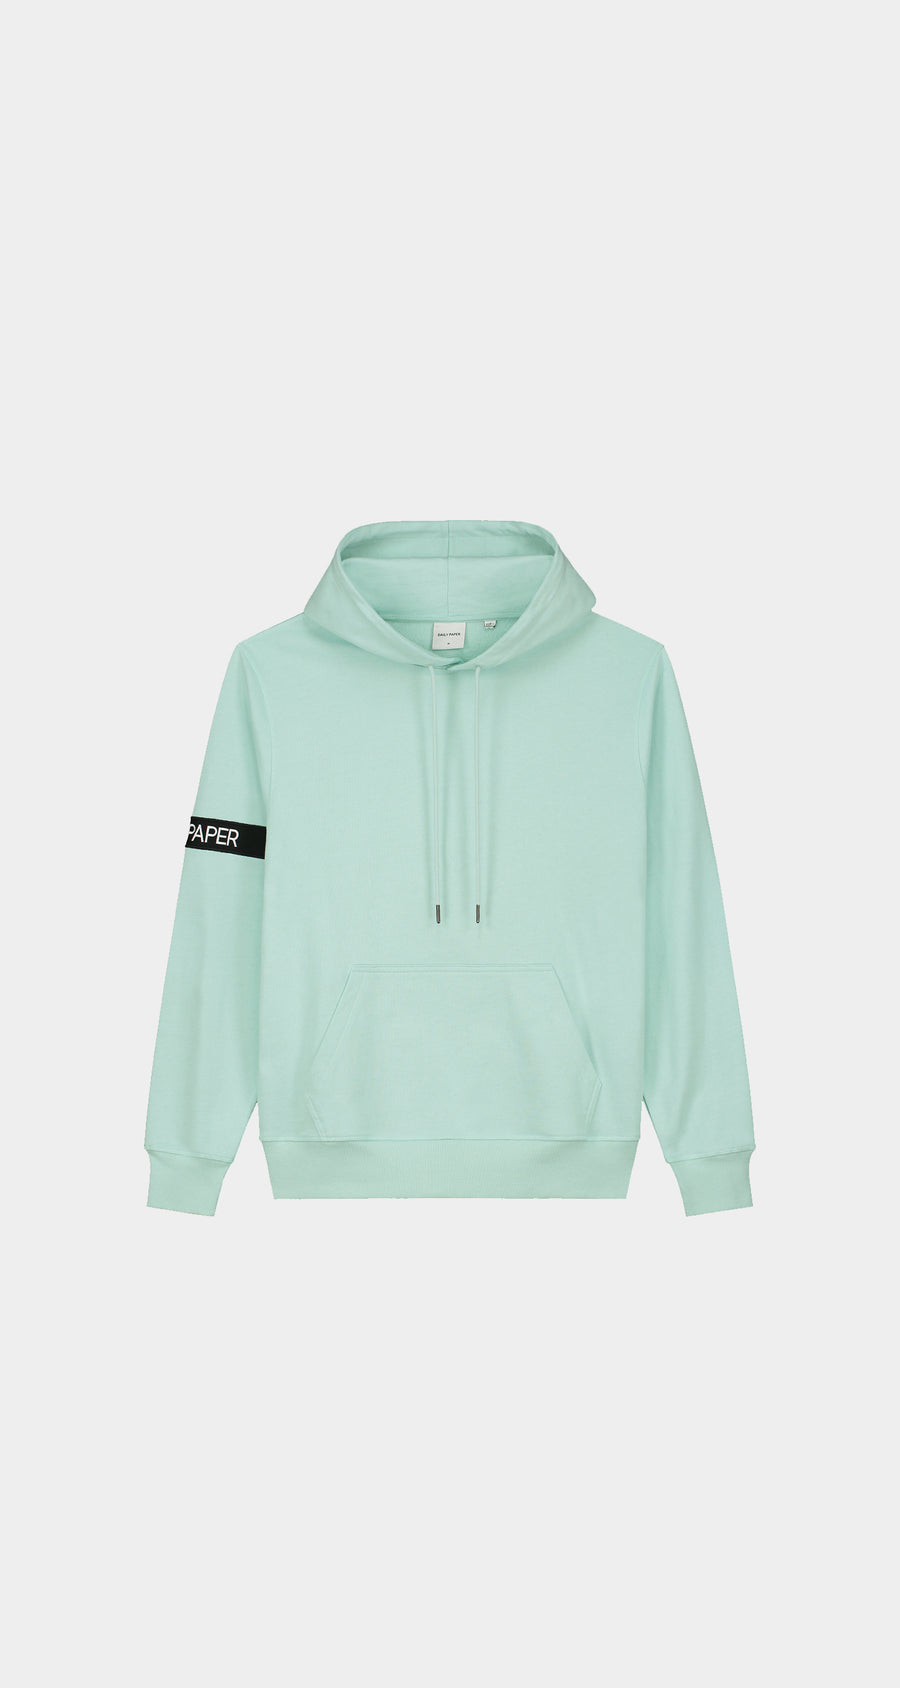 Daily Paper - Pastel Turquoise Captain Hoody - Men Front